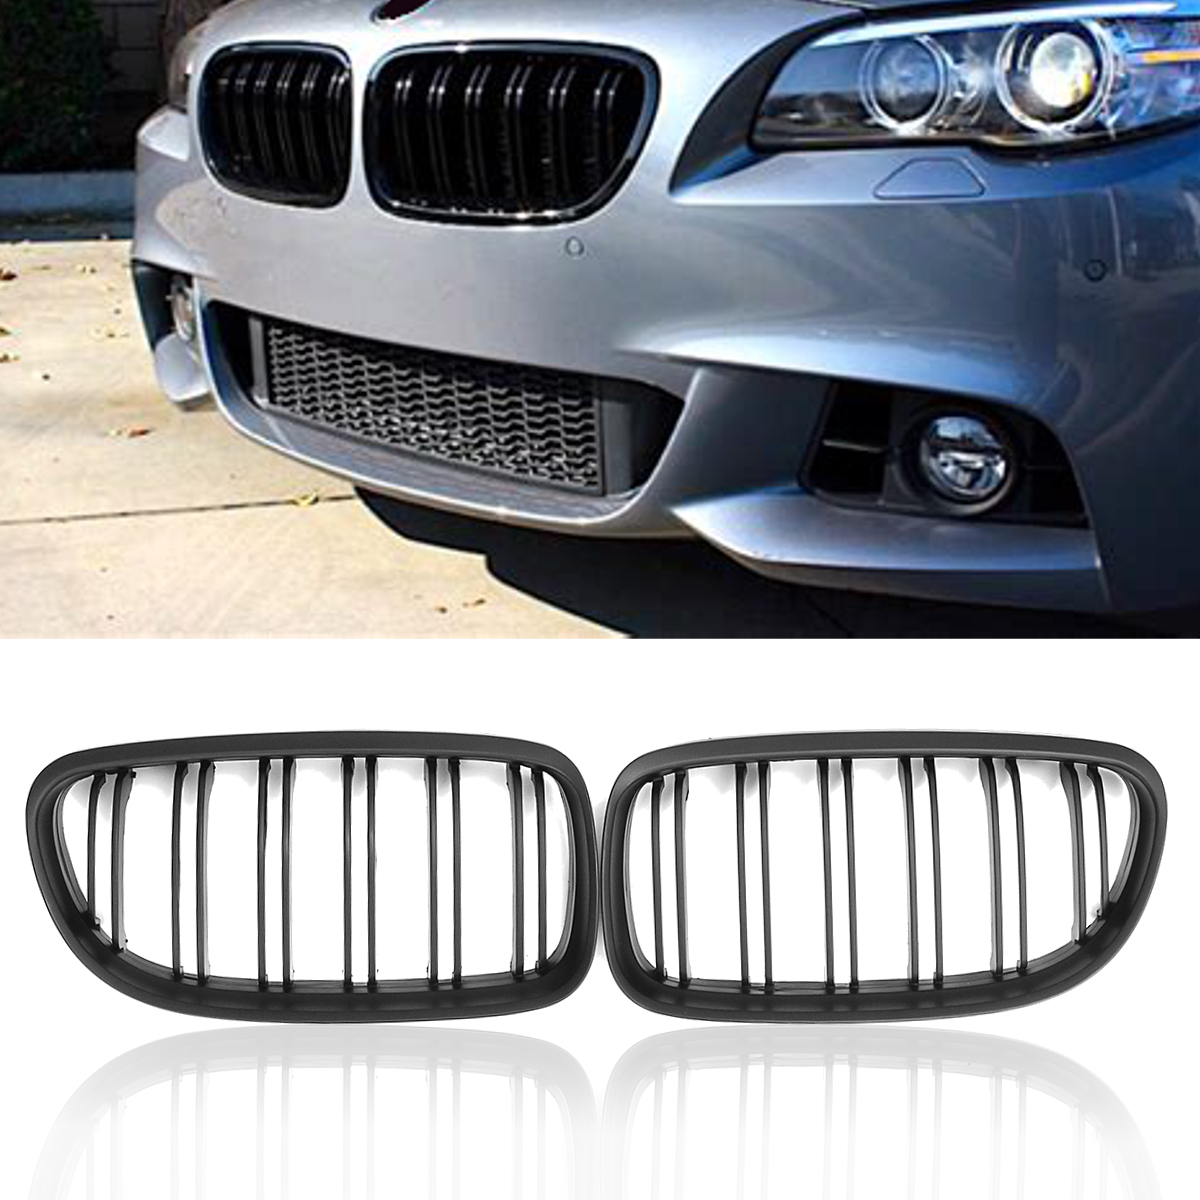 1 Pair Gloss Black Front Kidney Grille Grill Double Line Slat For BMW E90 E91 2009